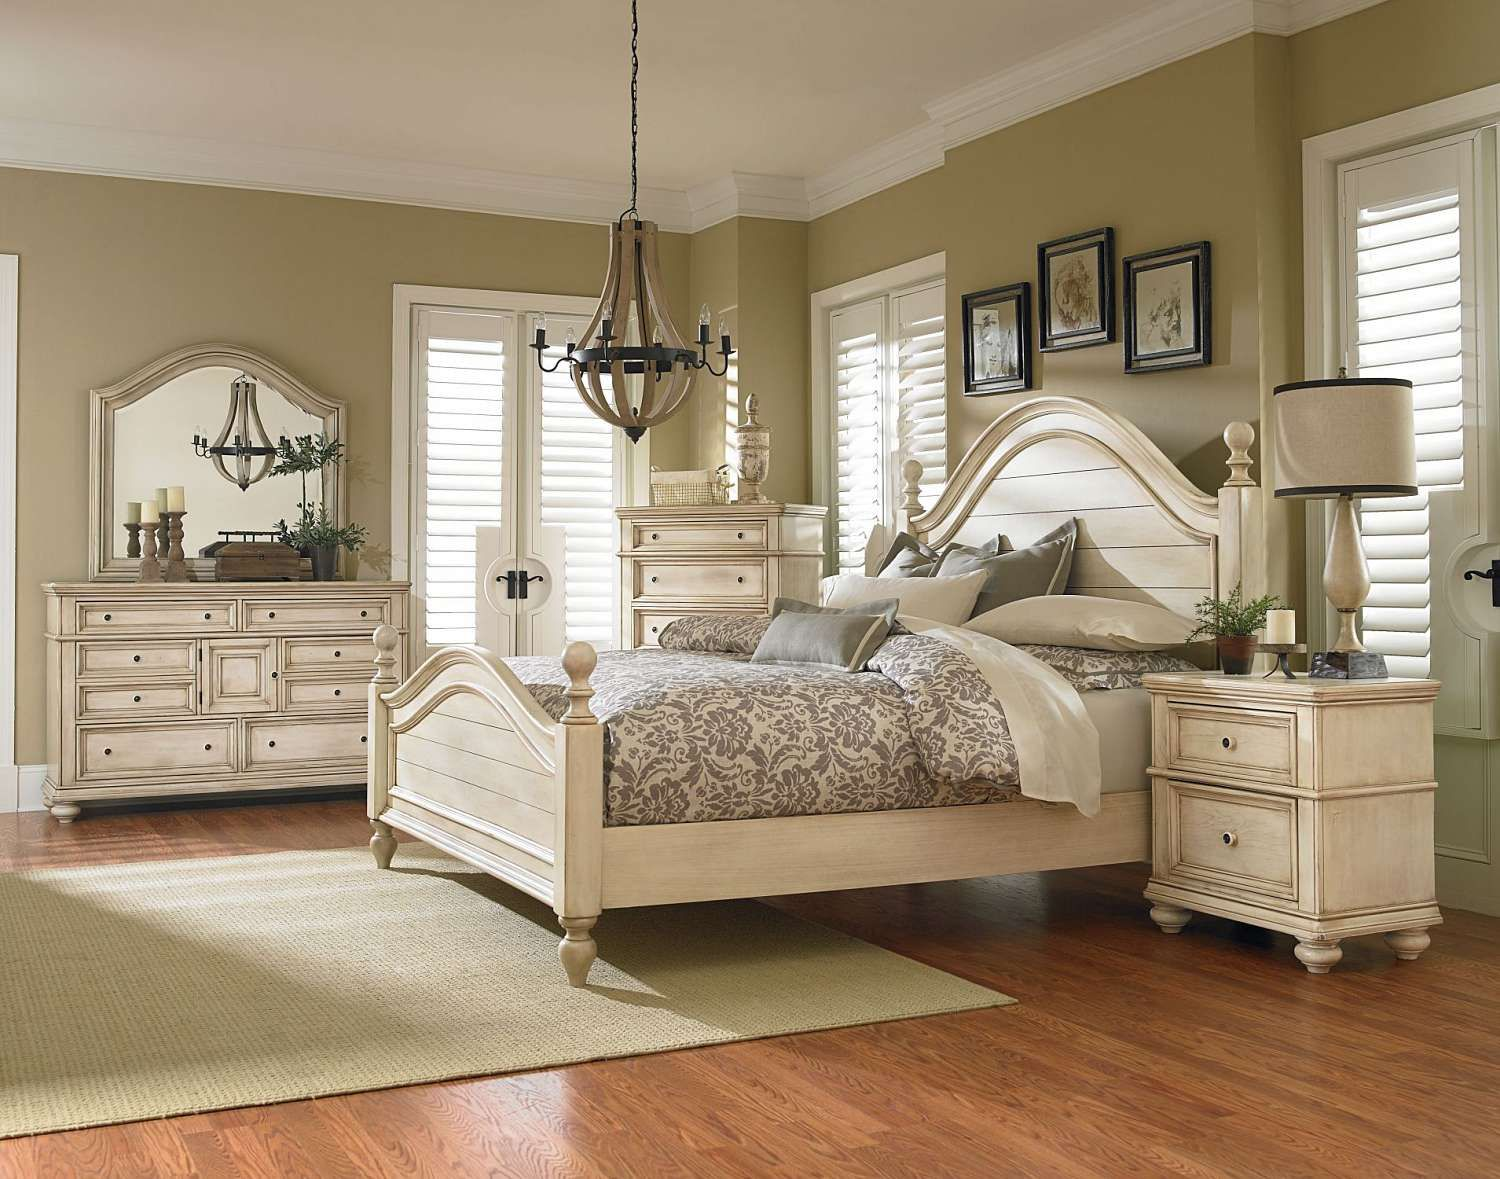 white queen bedroom sets. Chateau 5 Piece Queen Bedroom Set - FFO Home White Sets T